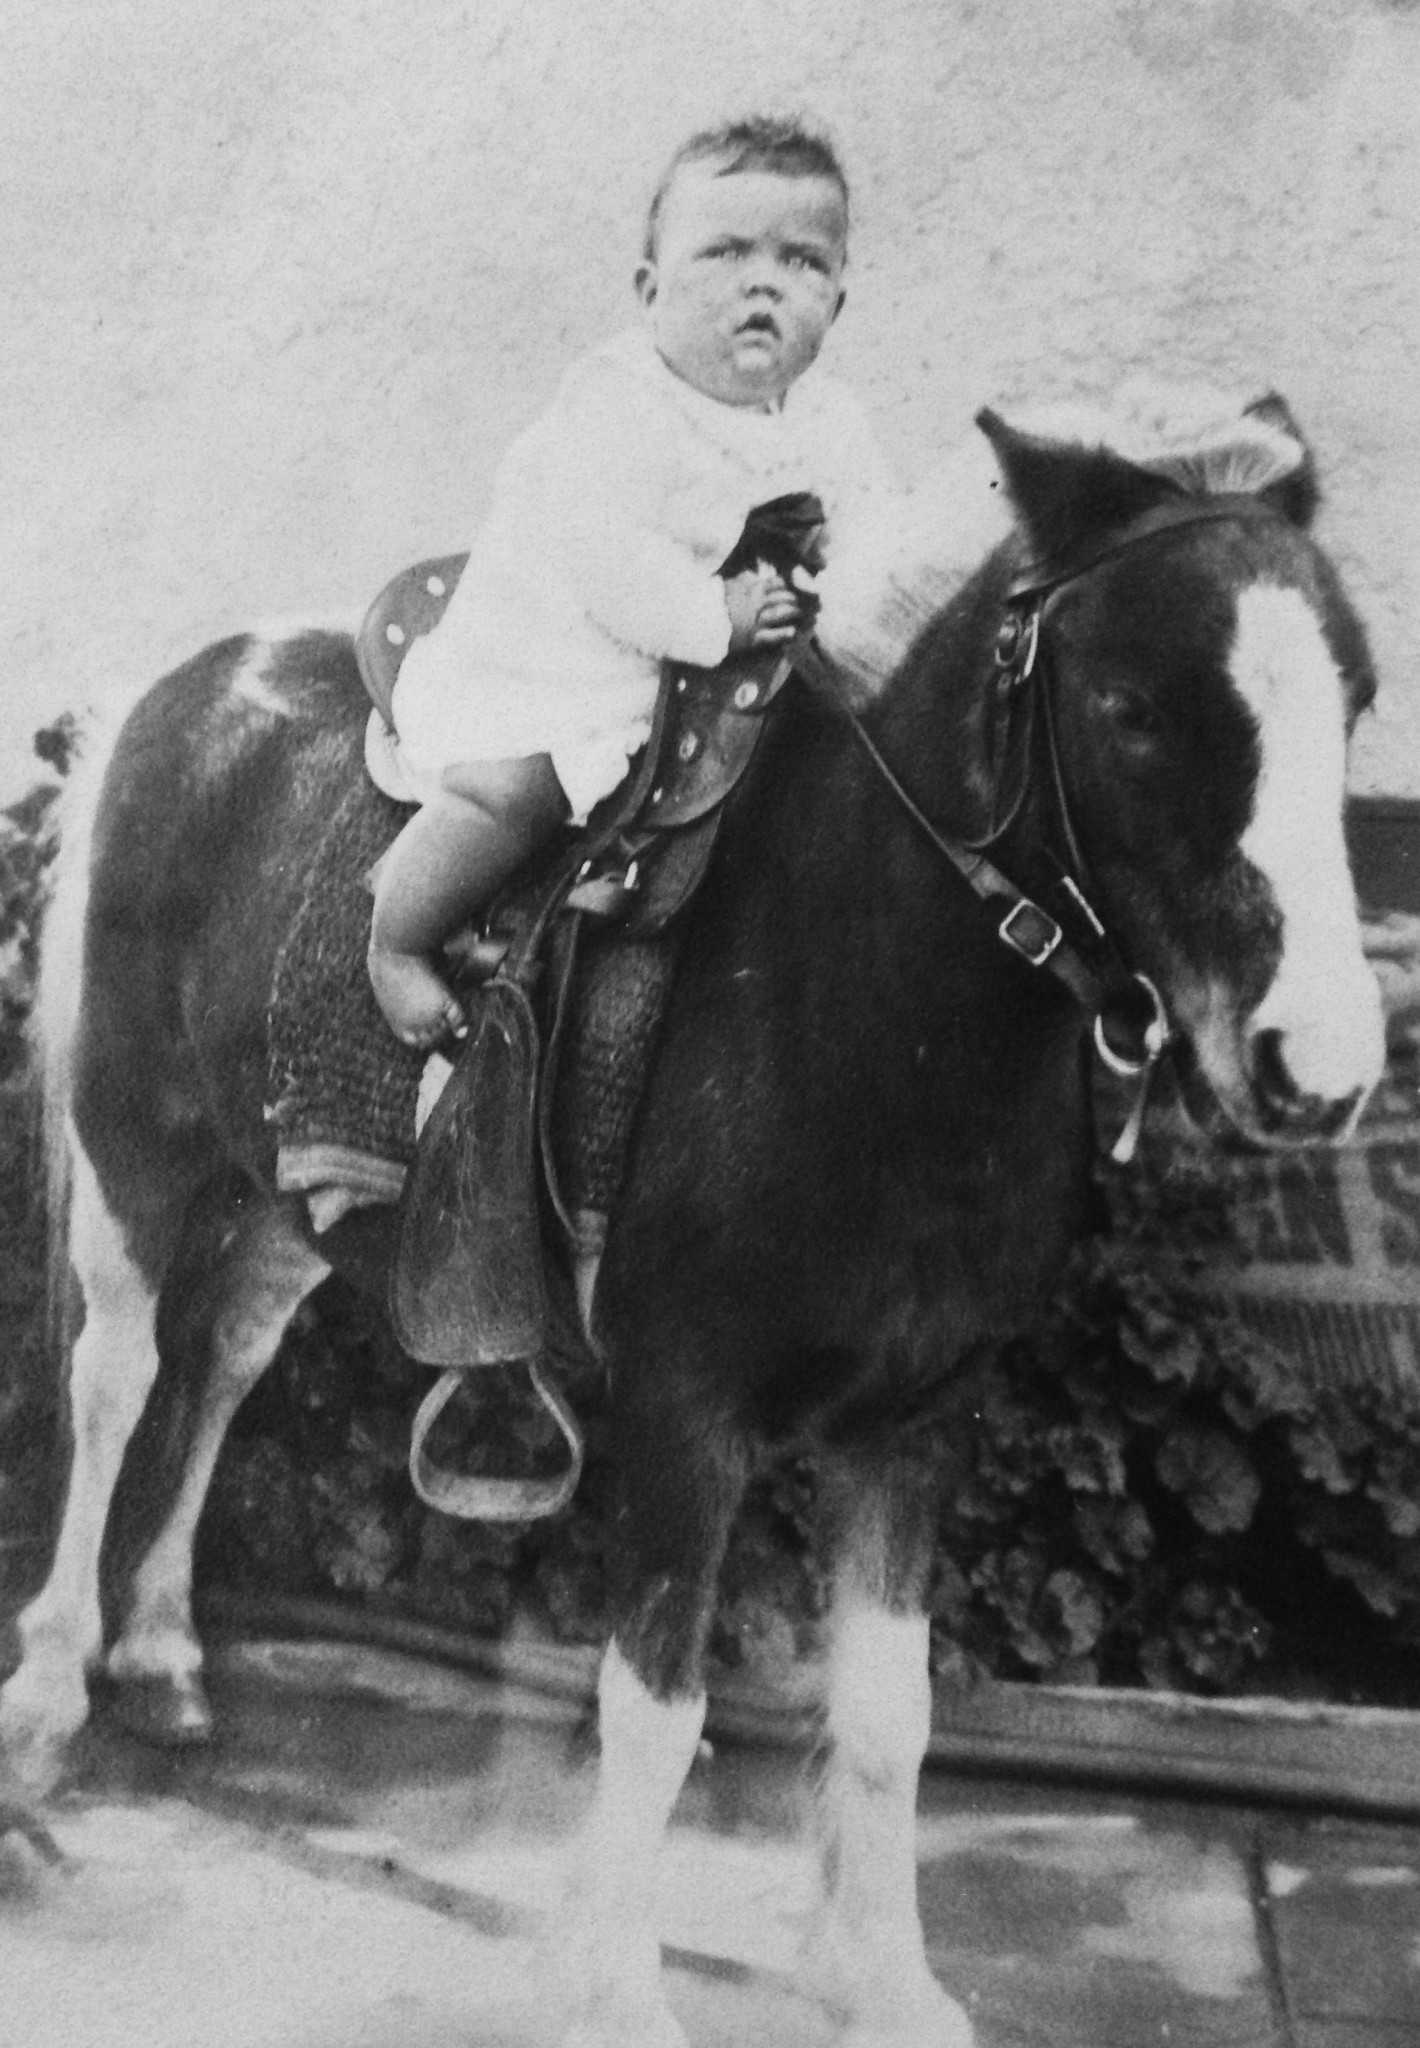 My mother riding around 1931. (Photo from family archives)